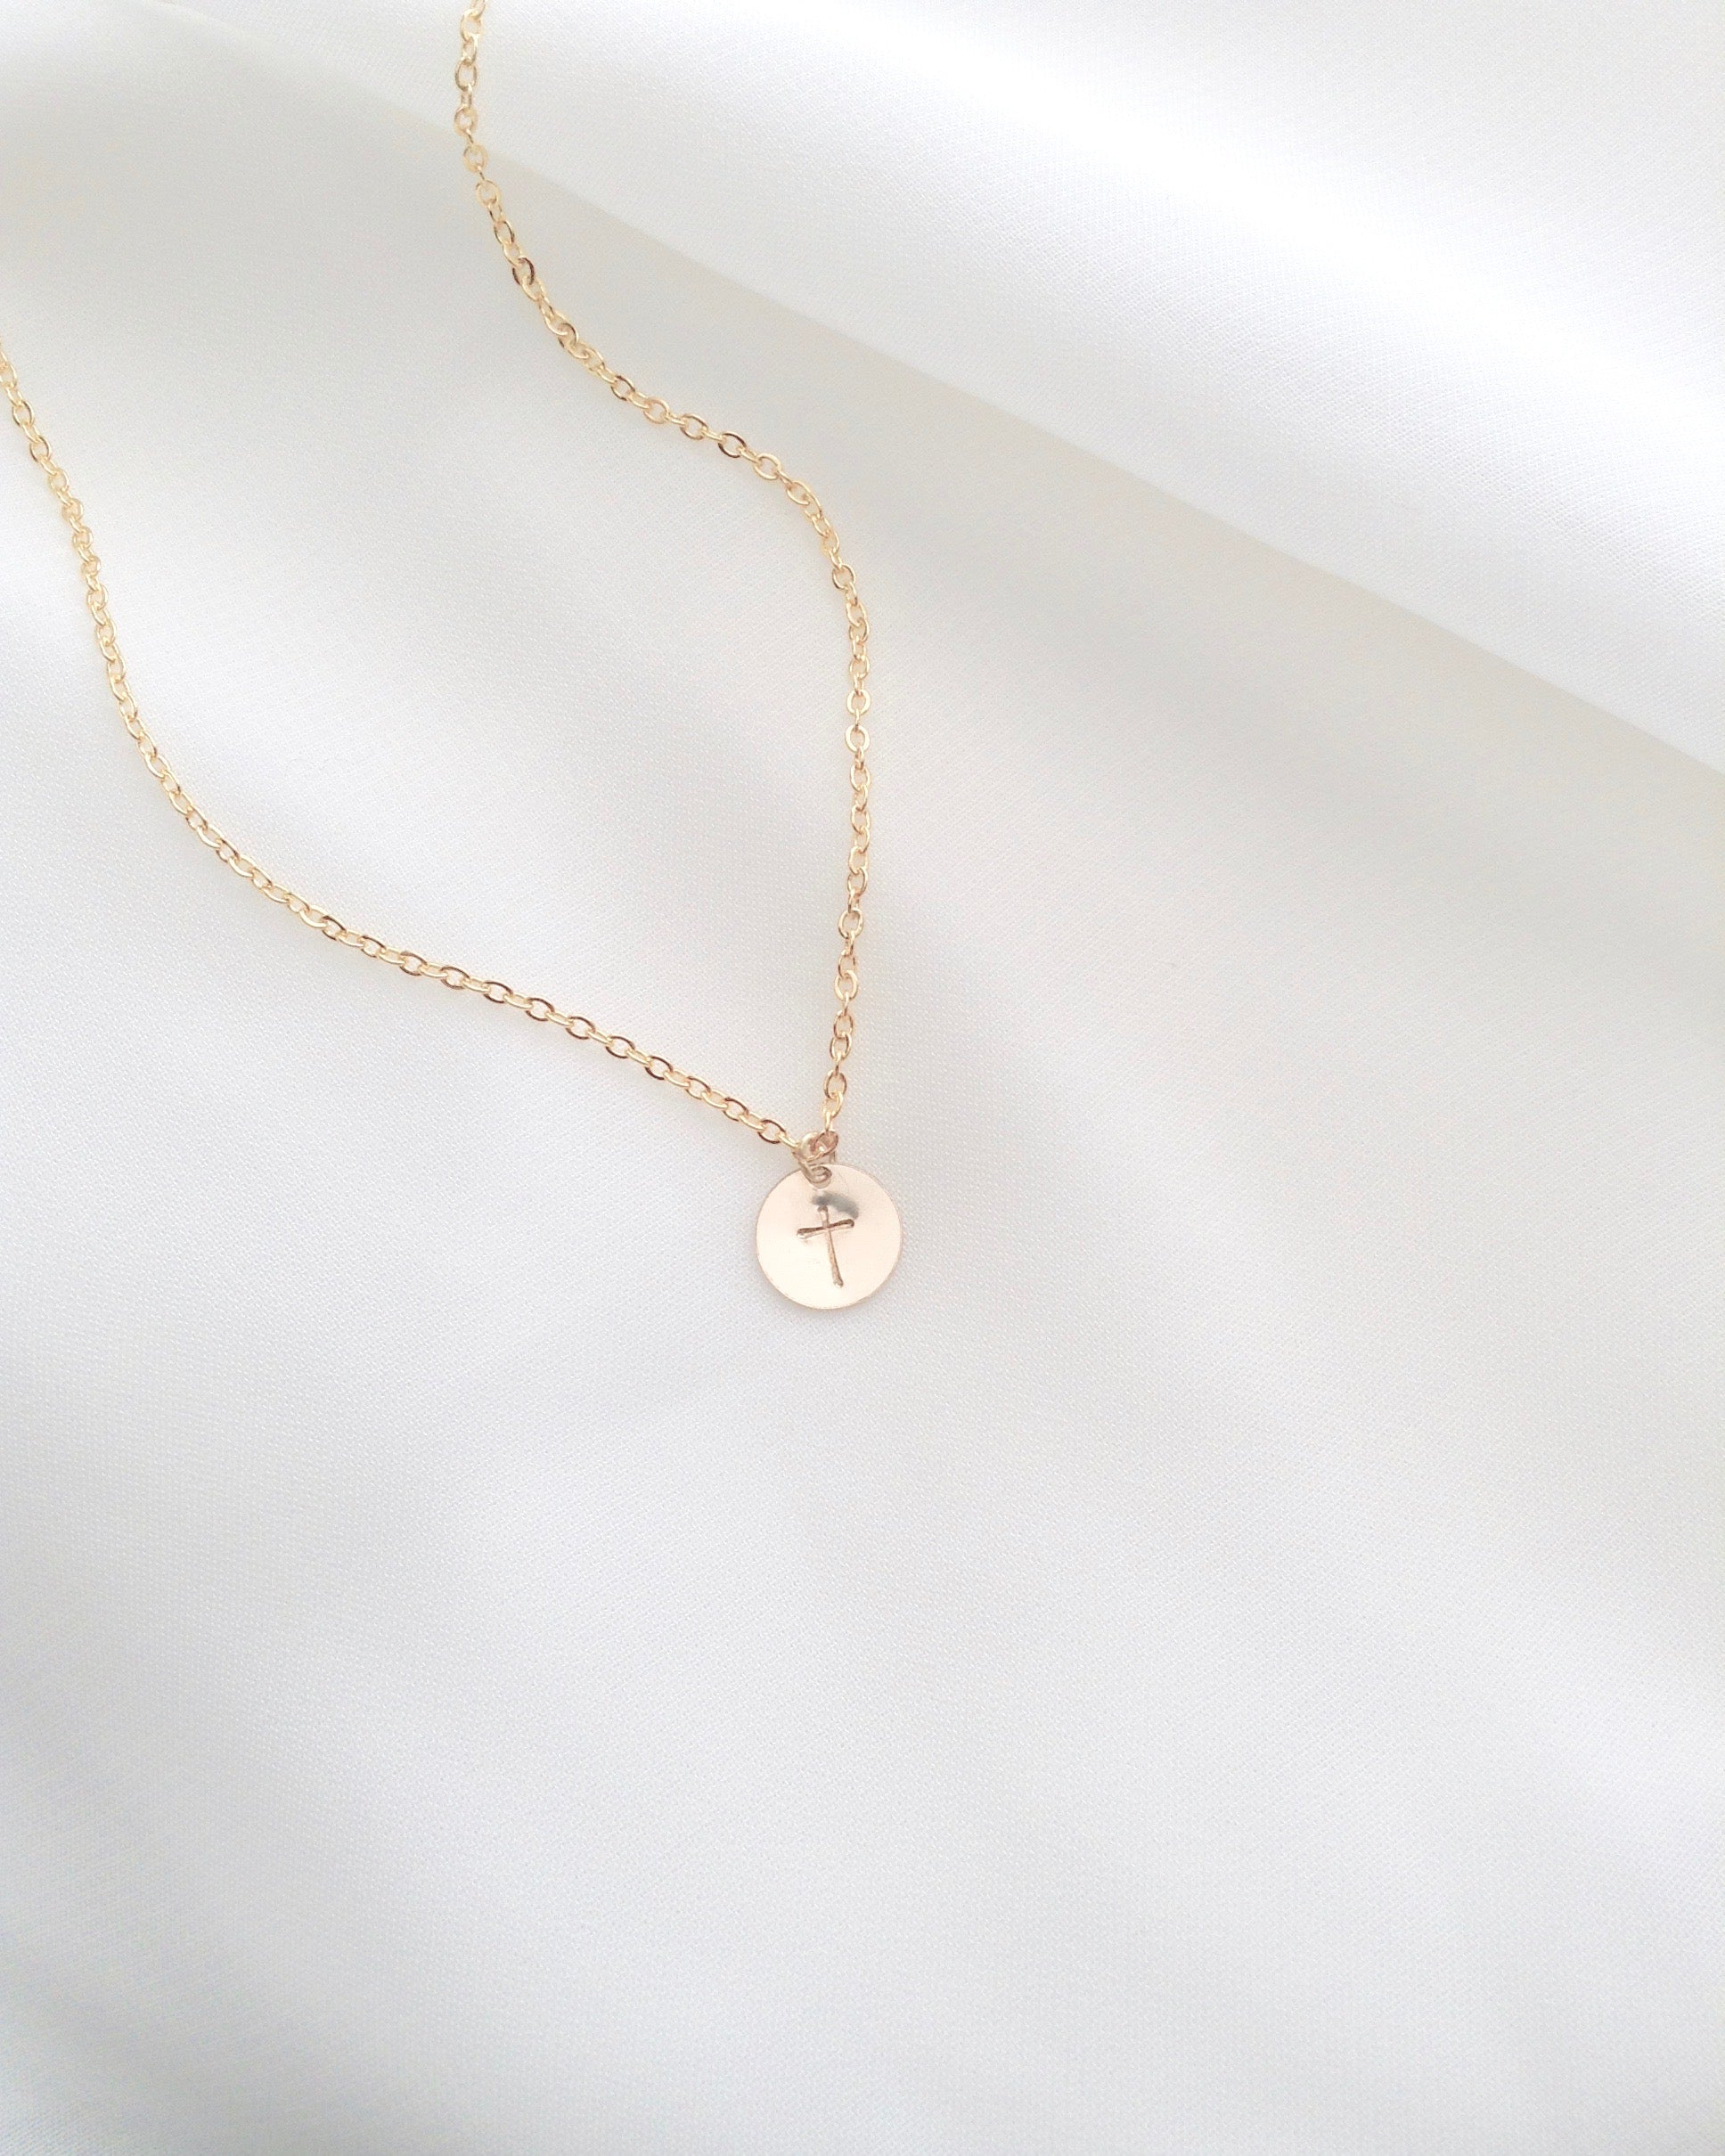 Delicate Cross Necklace | IB Jewelry